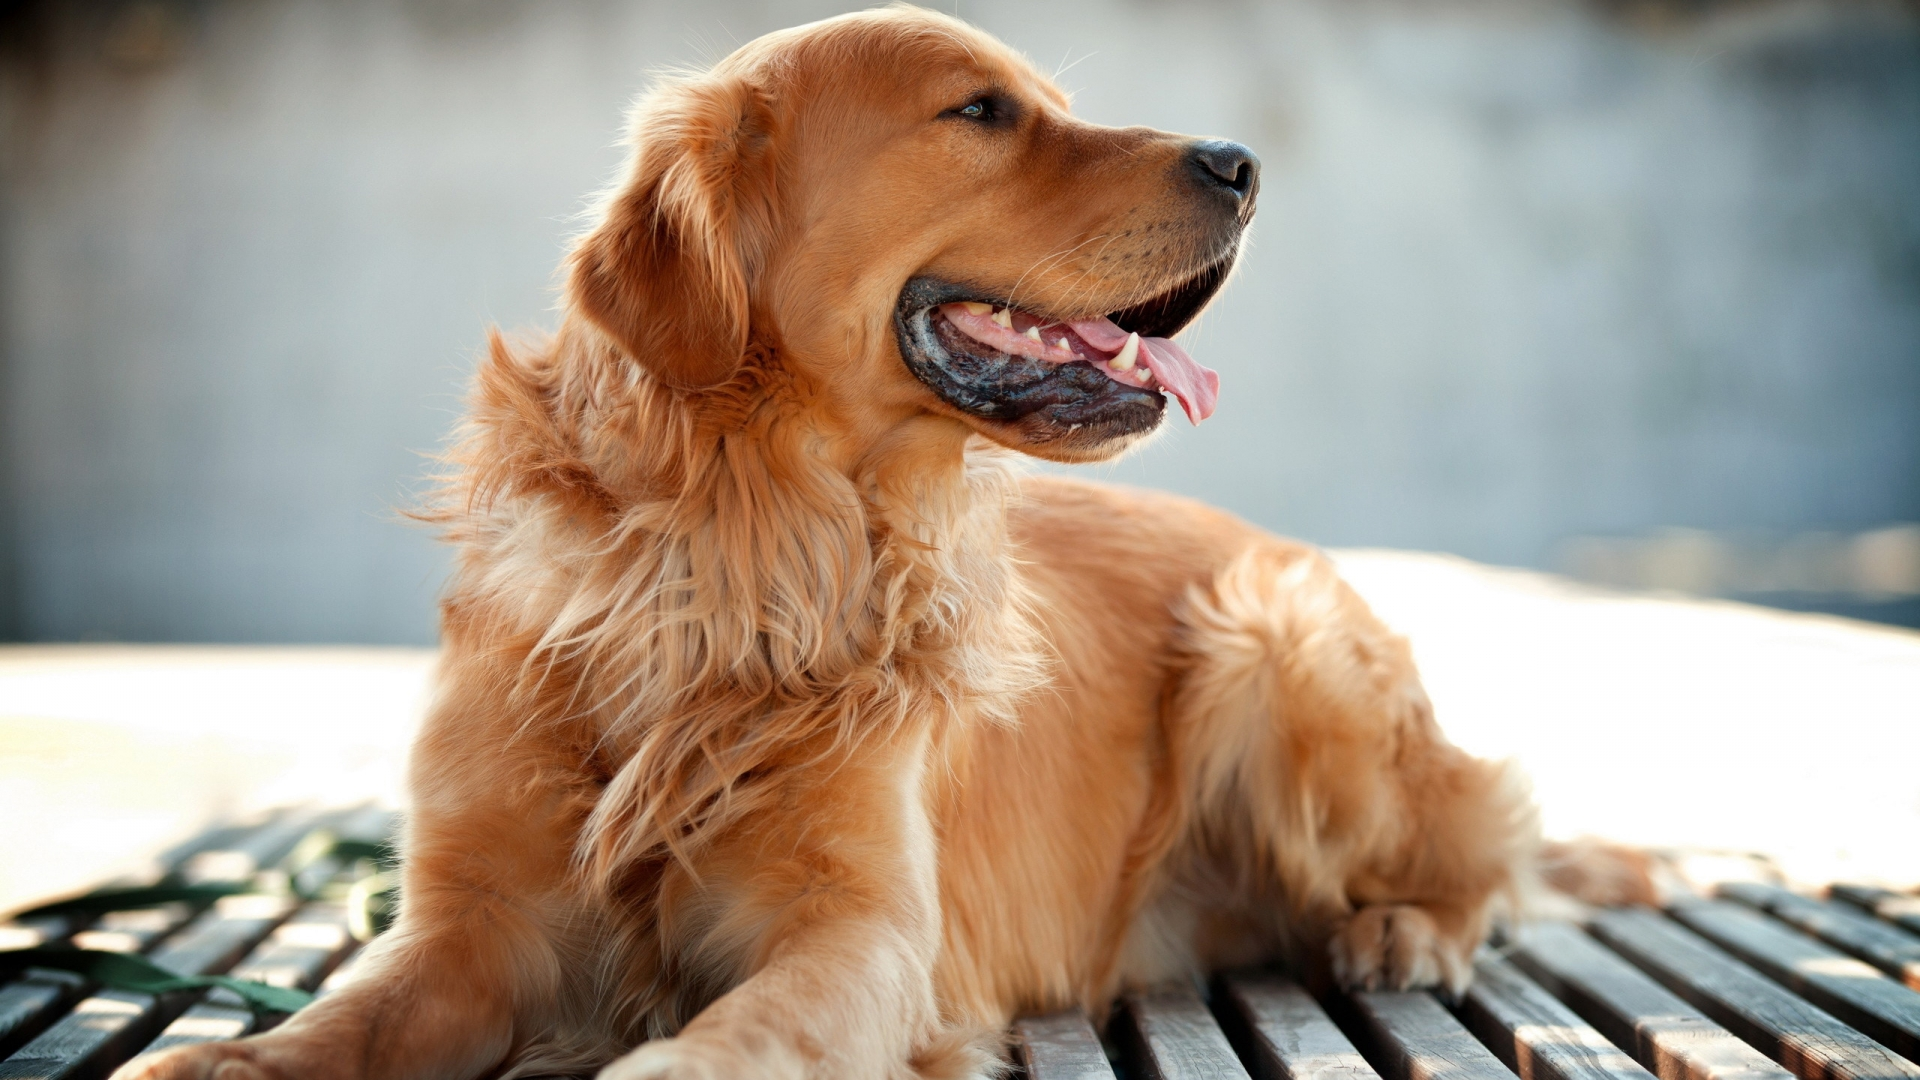 Golden Retriever Wallpaper Page 2 Of 3 Downloadwallpaper Org